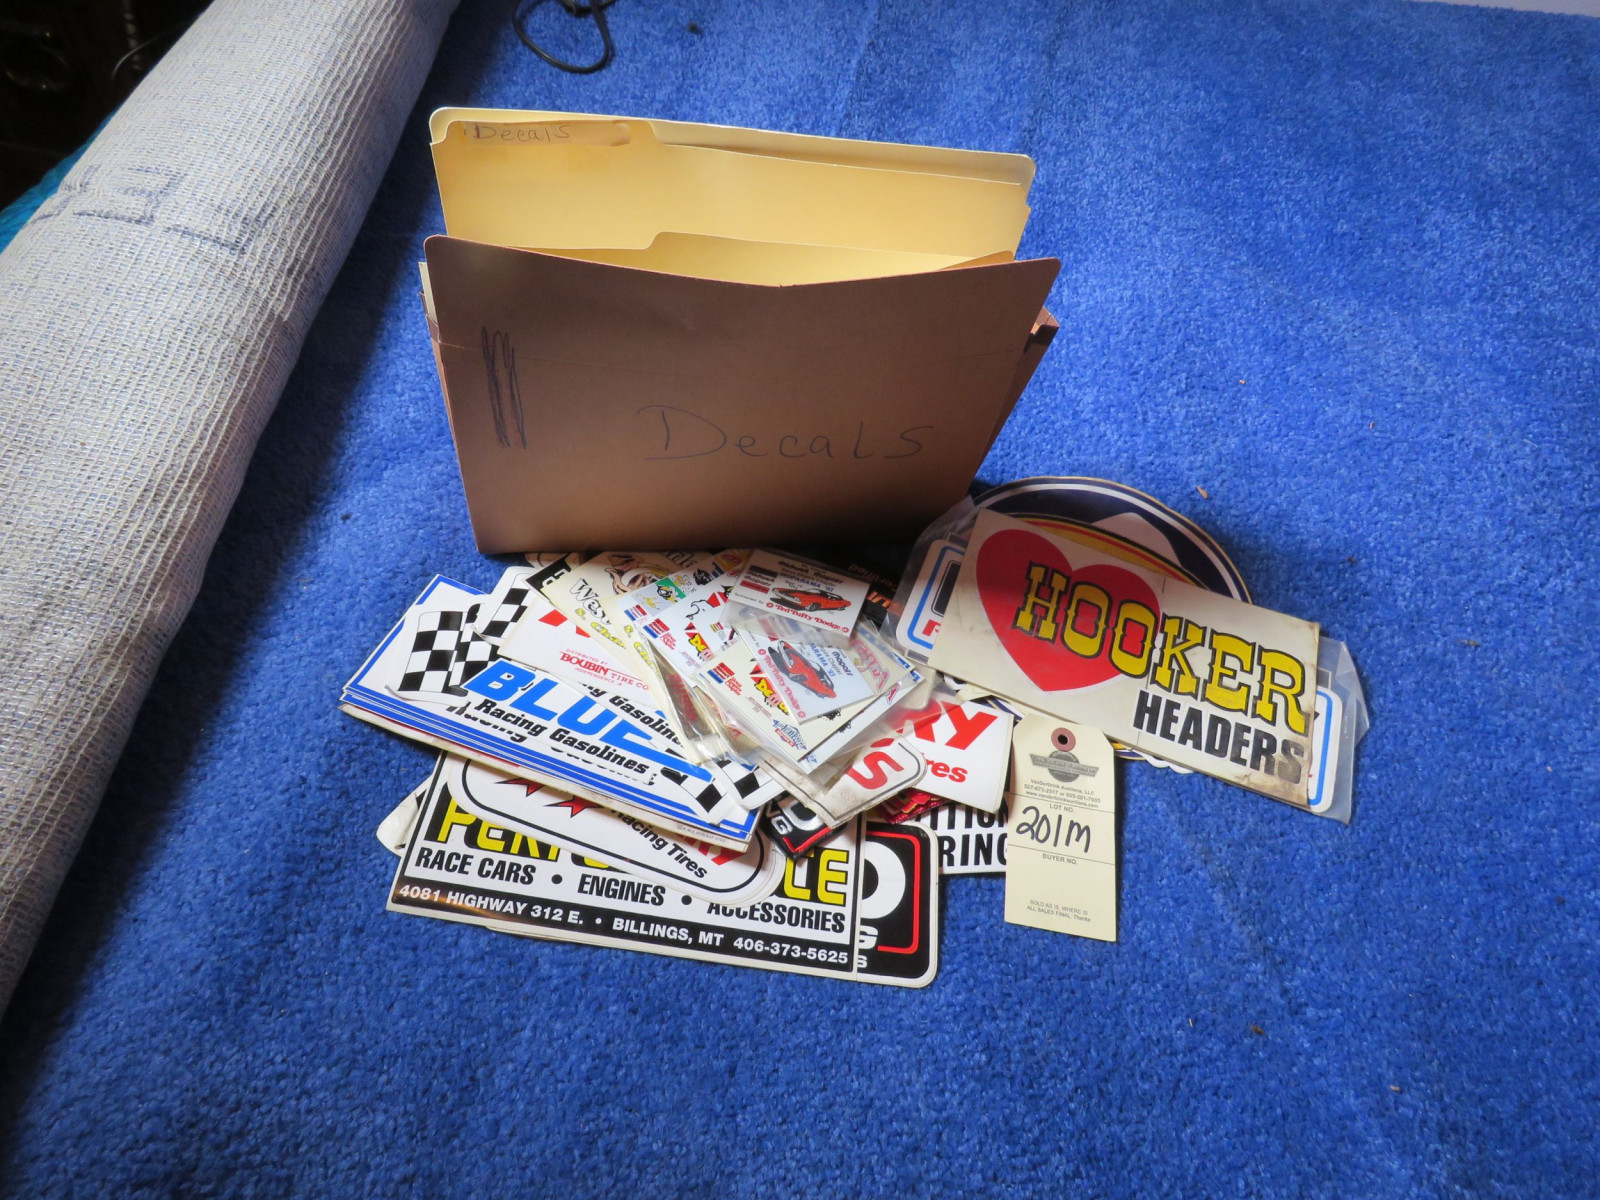 MOPAR Patches and Decals - Image 1